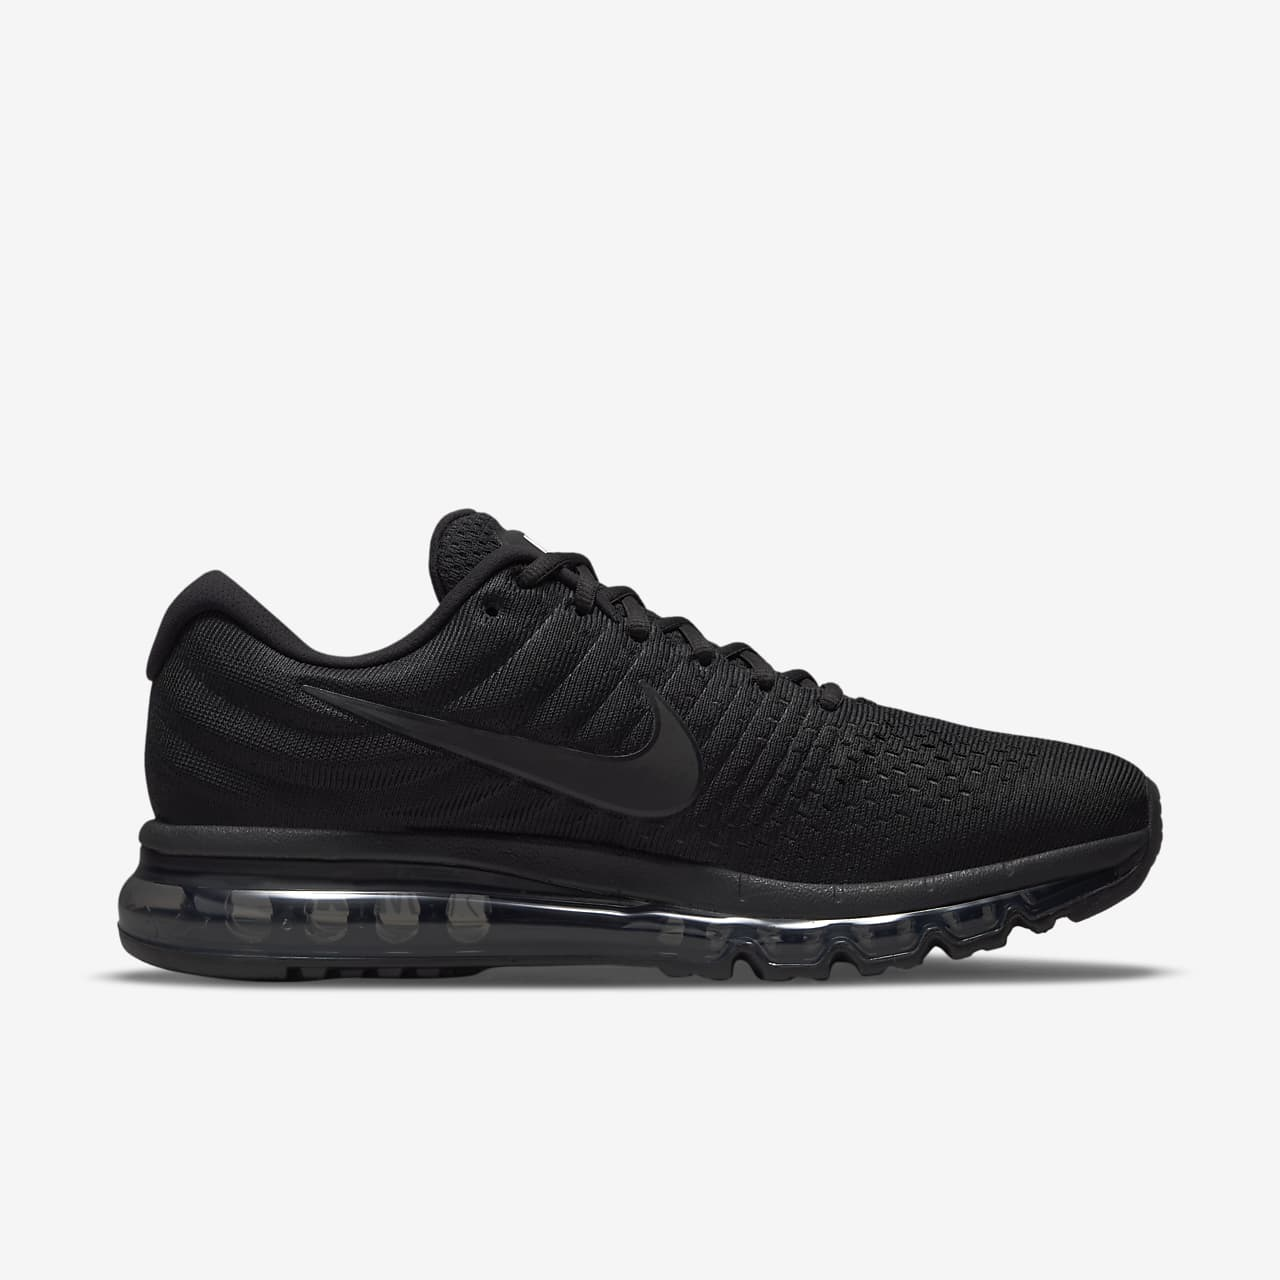 nike air max kids 2017 nz